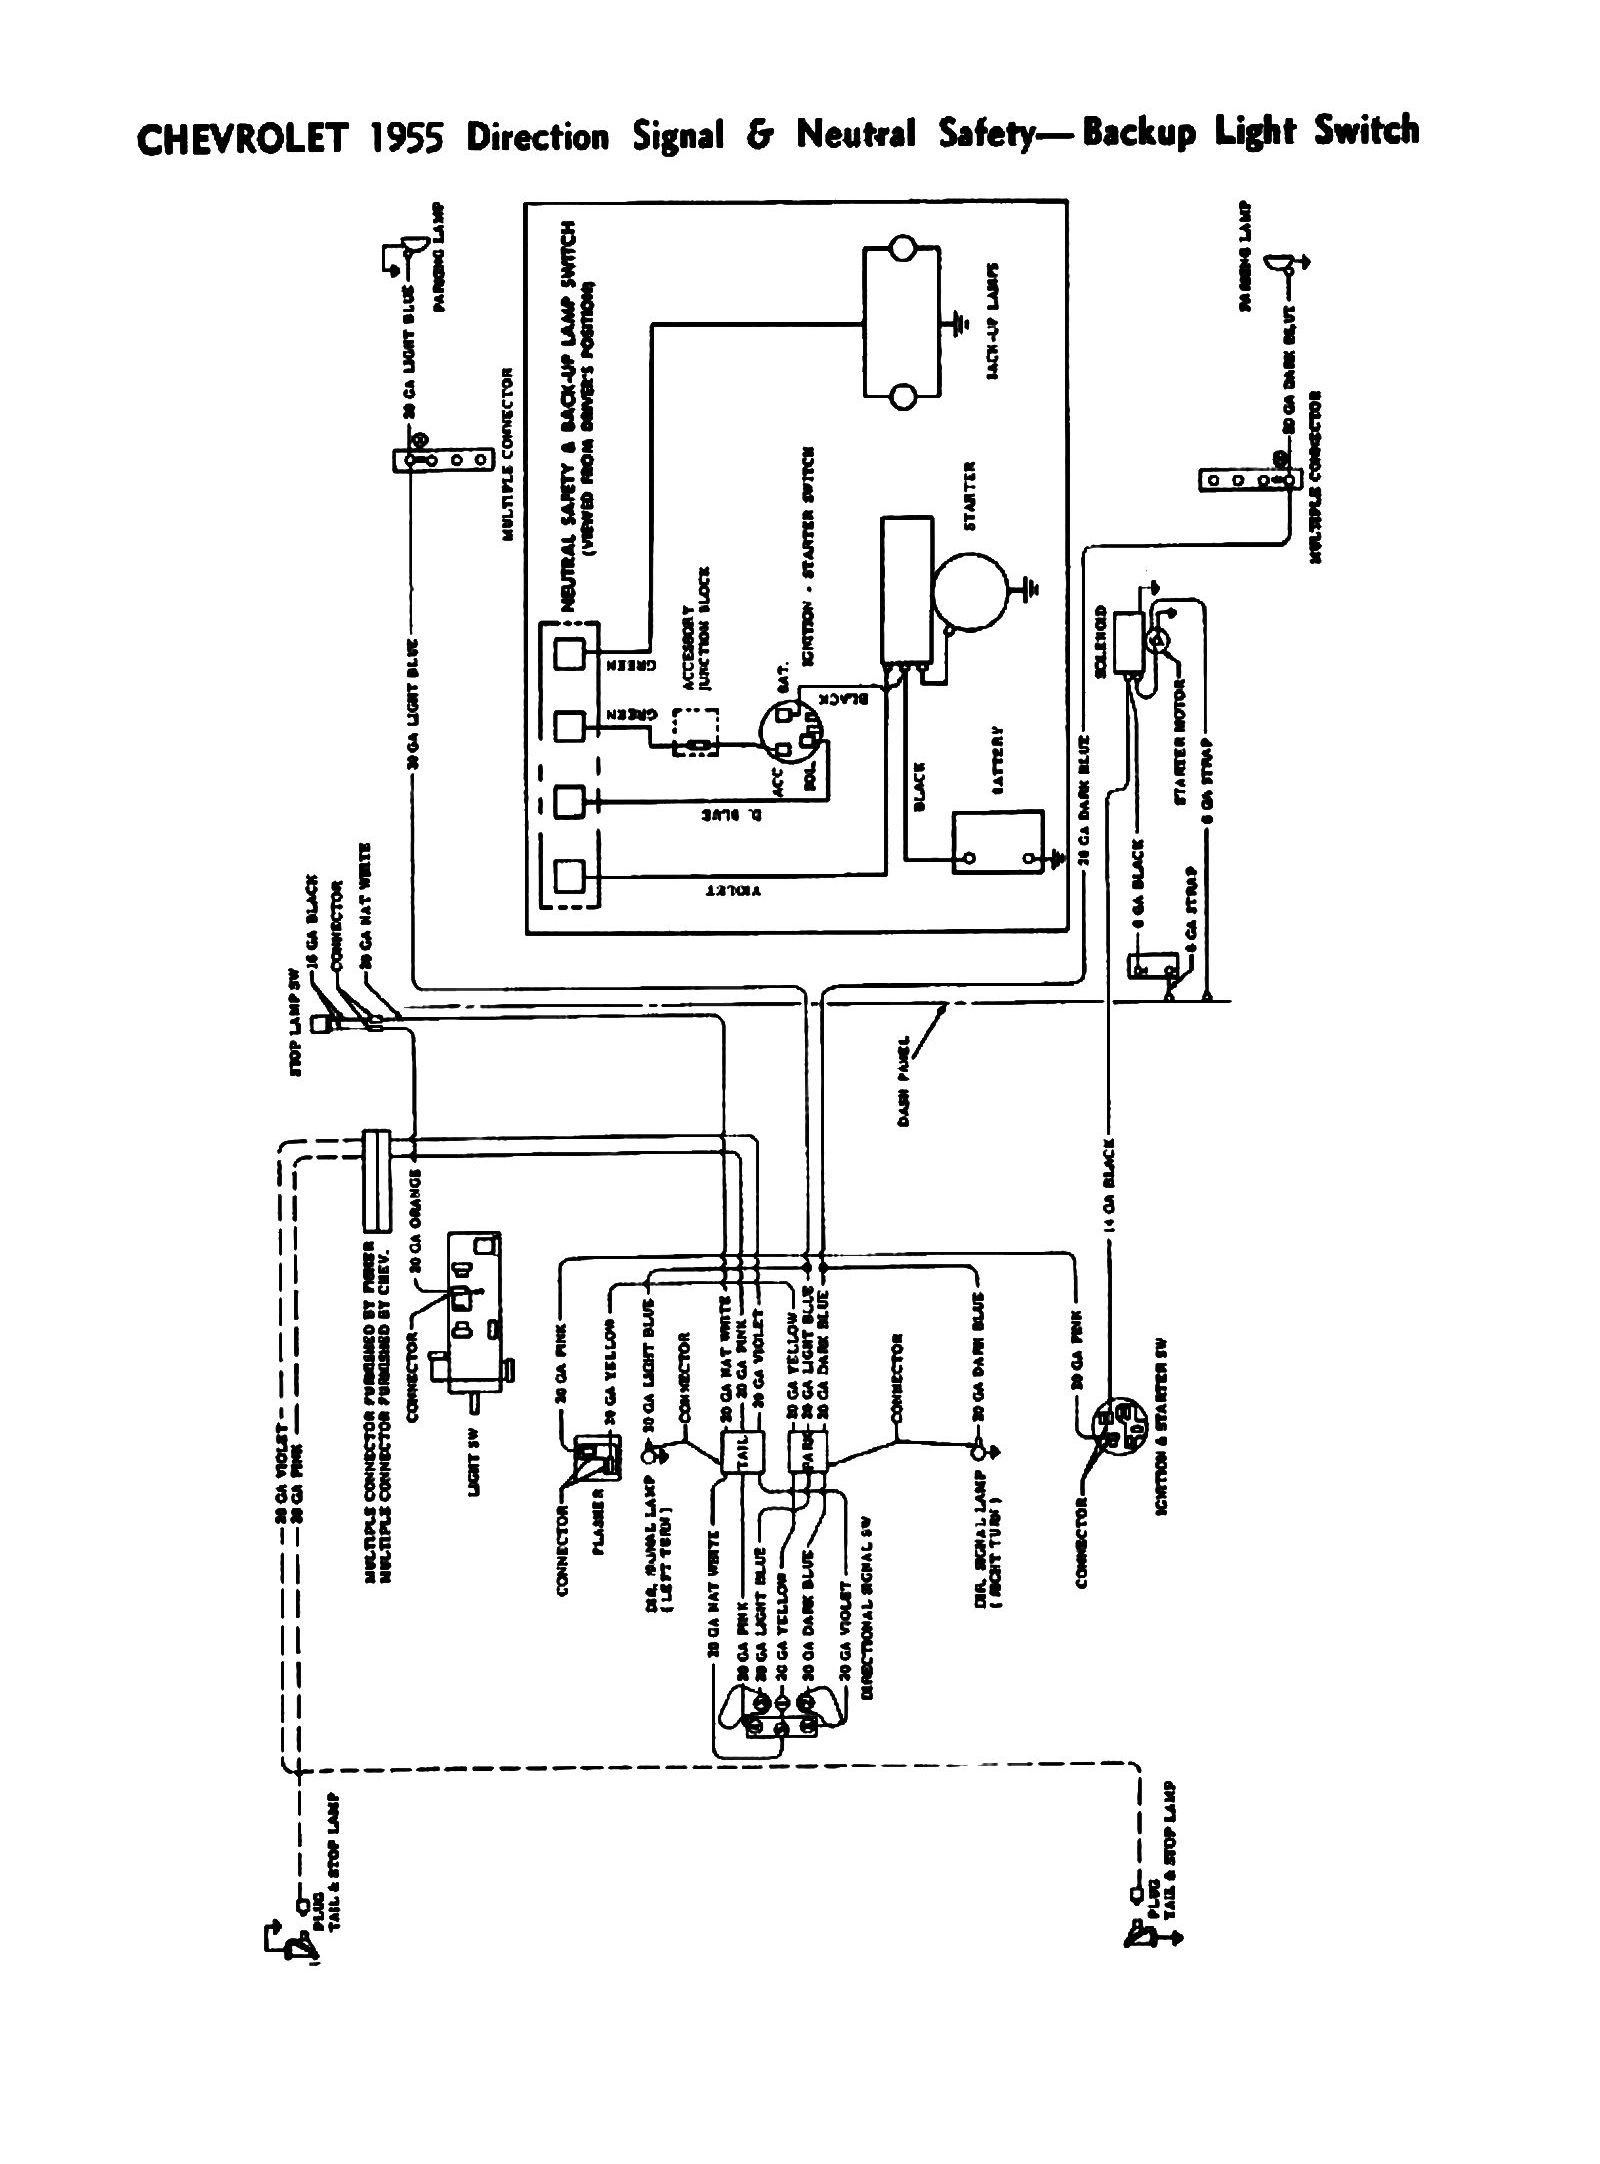 1954 chevrolet ignition switch wiring diagram